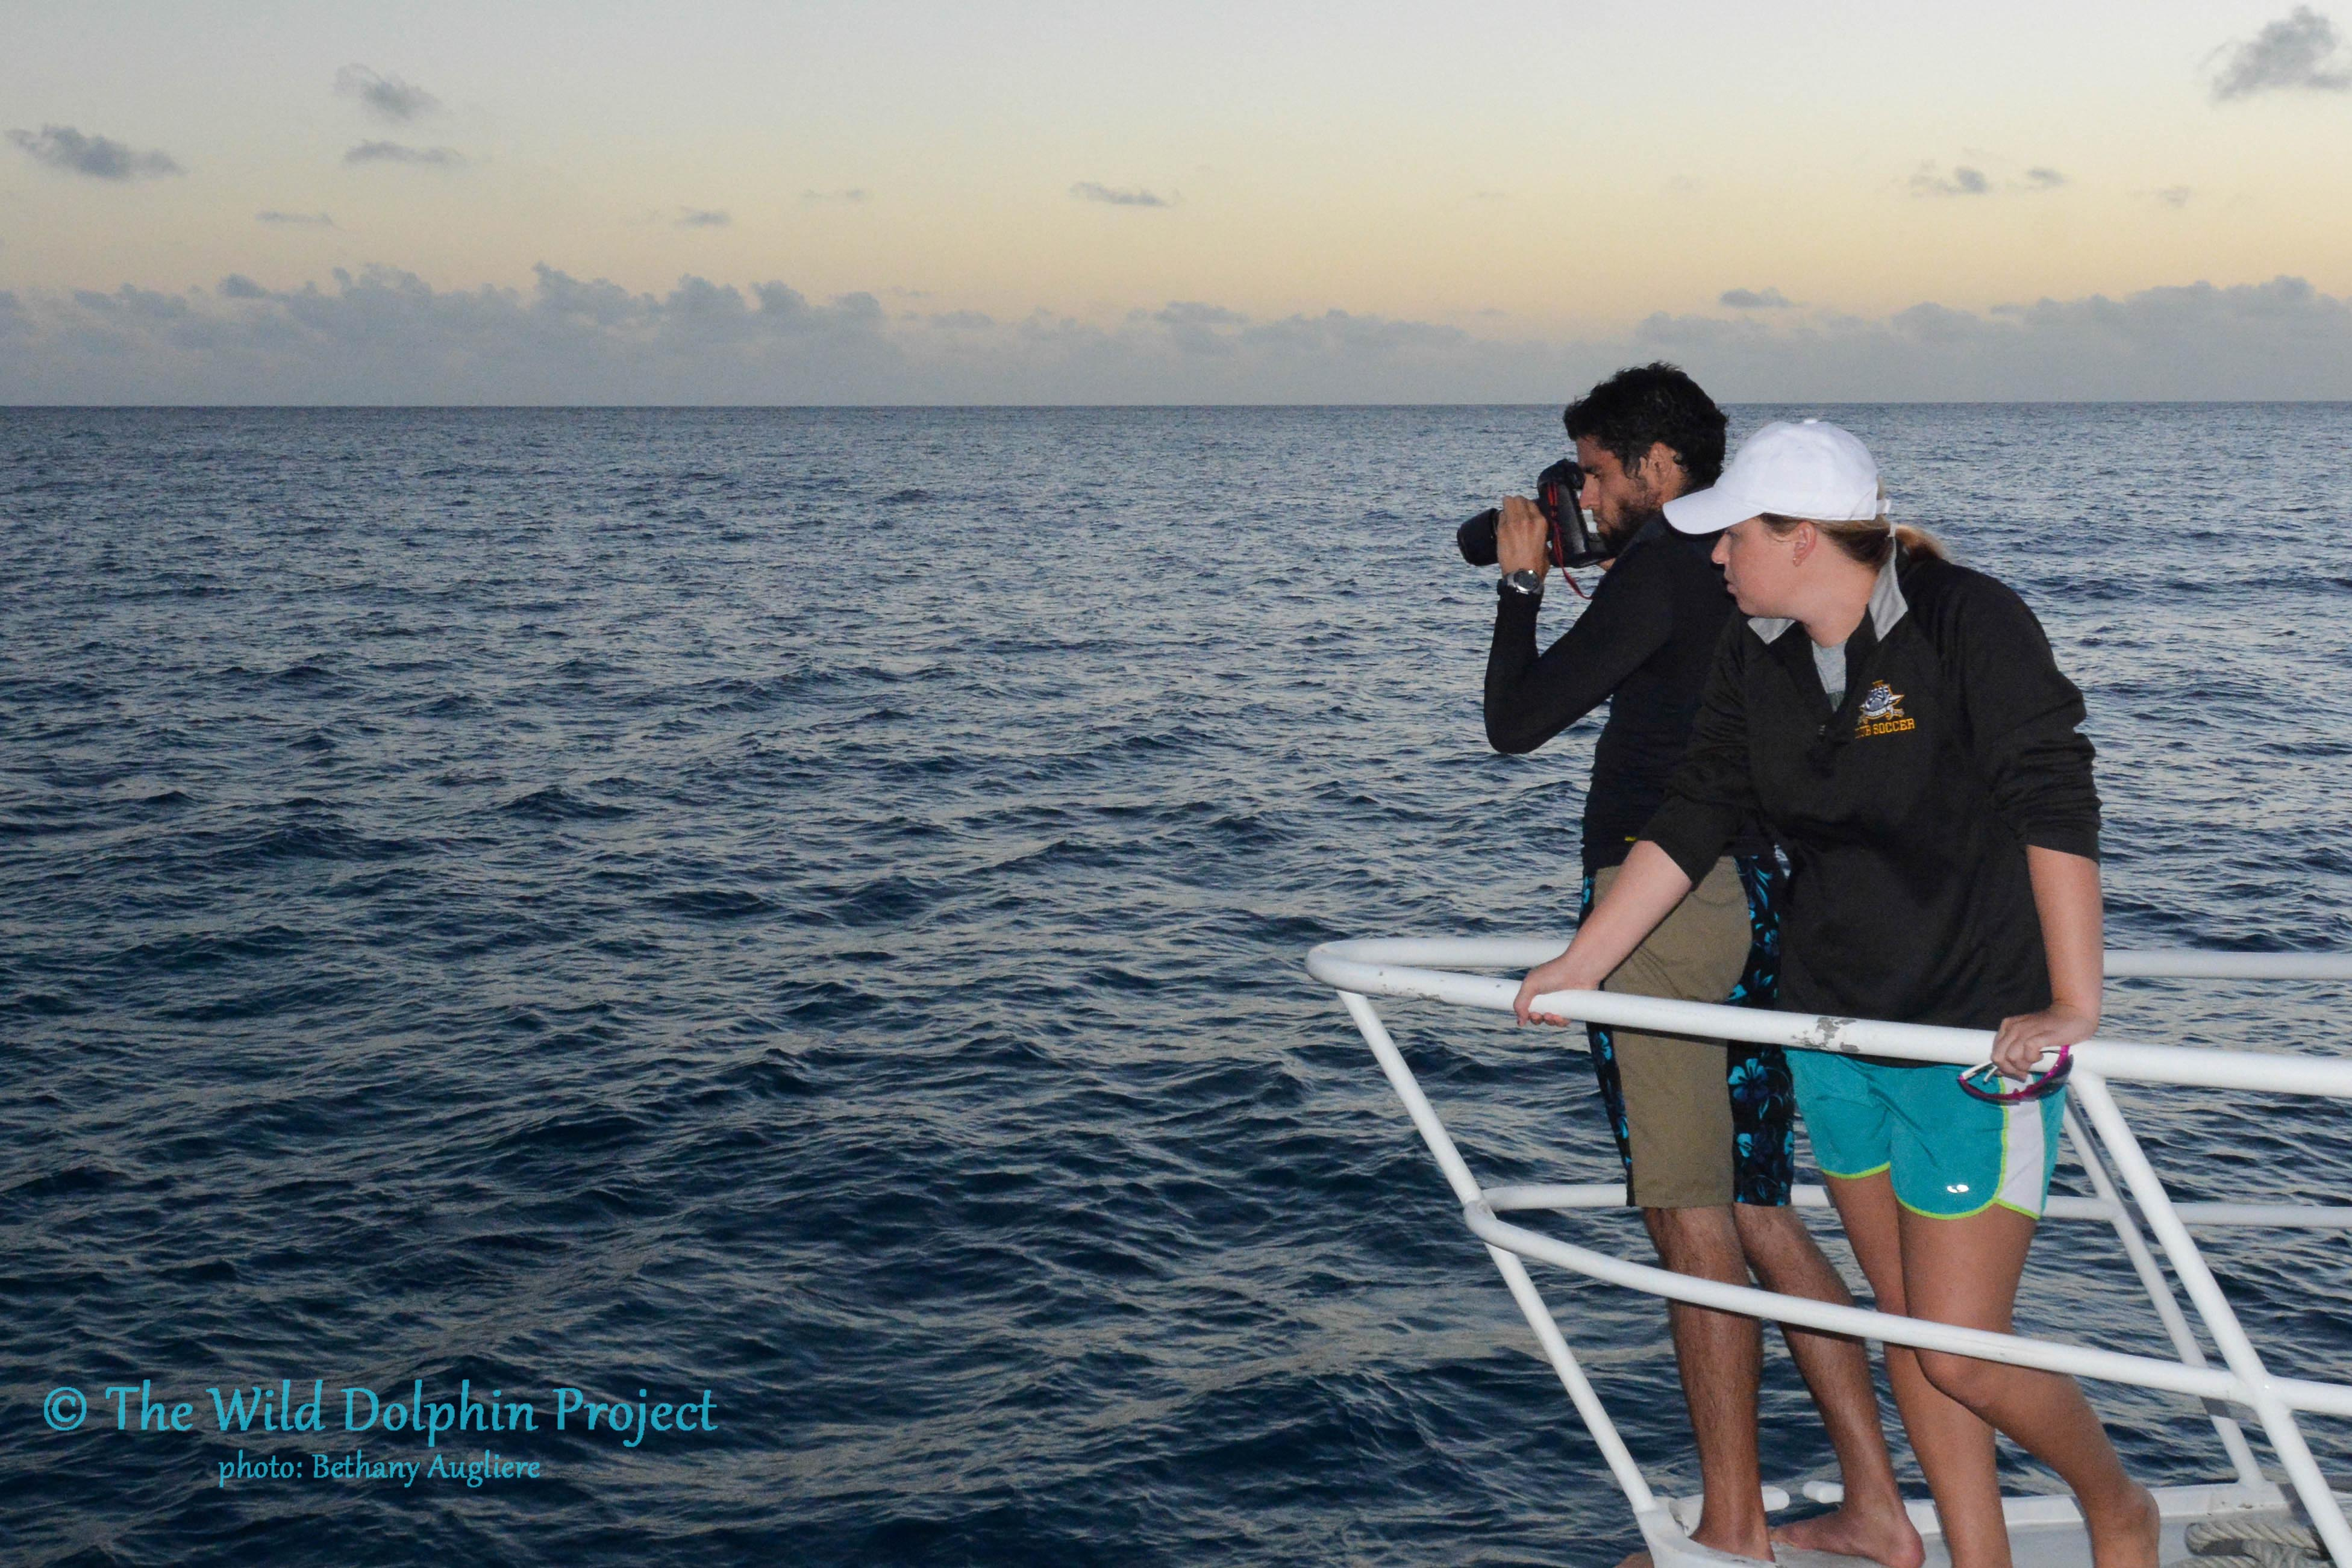 Graduate students with the Wild Dolphin Project take surface photo-identification shots of the dolphins